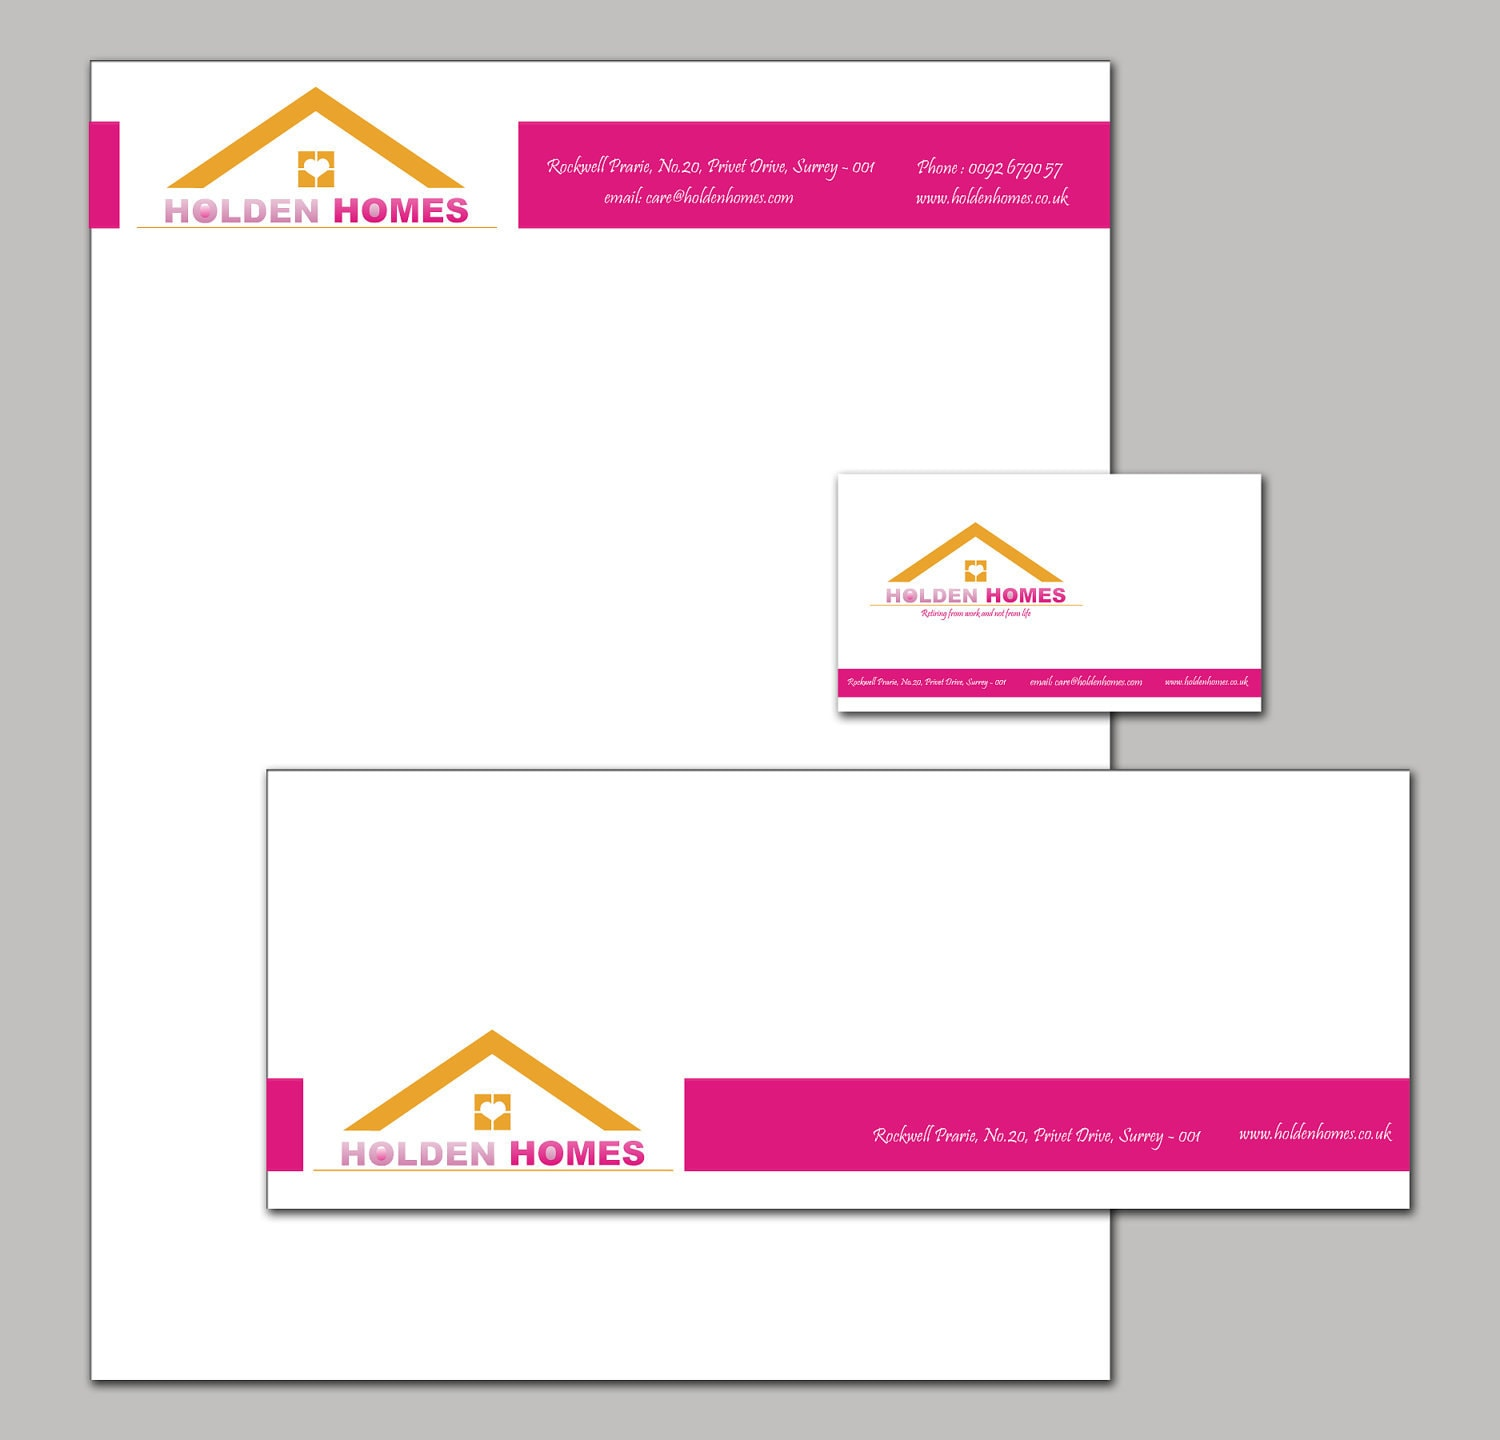 Letterhead Envelopes: Company Branding Stationary Set With A Letterhead Envelope